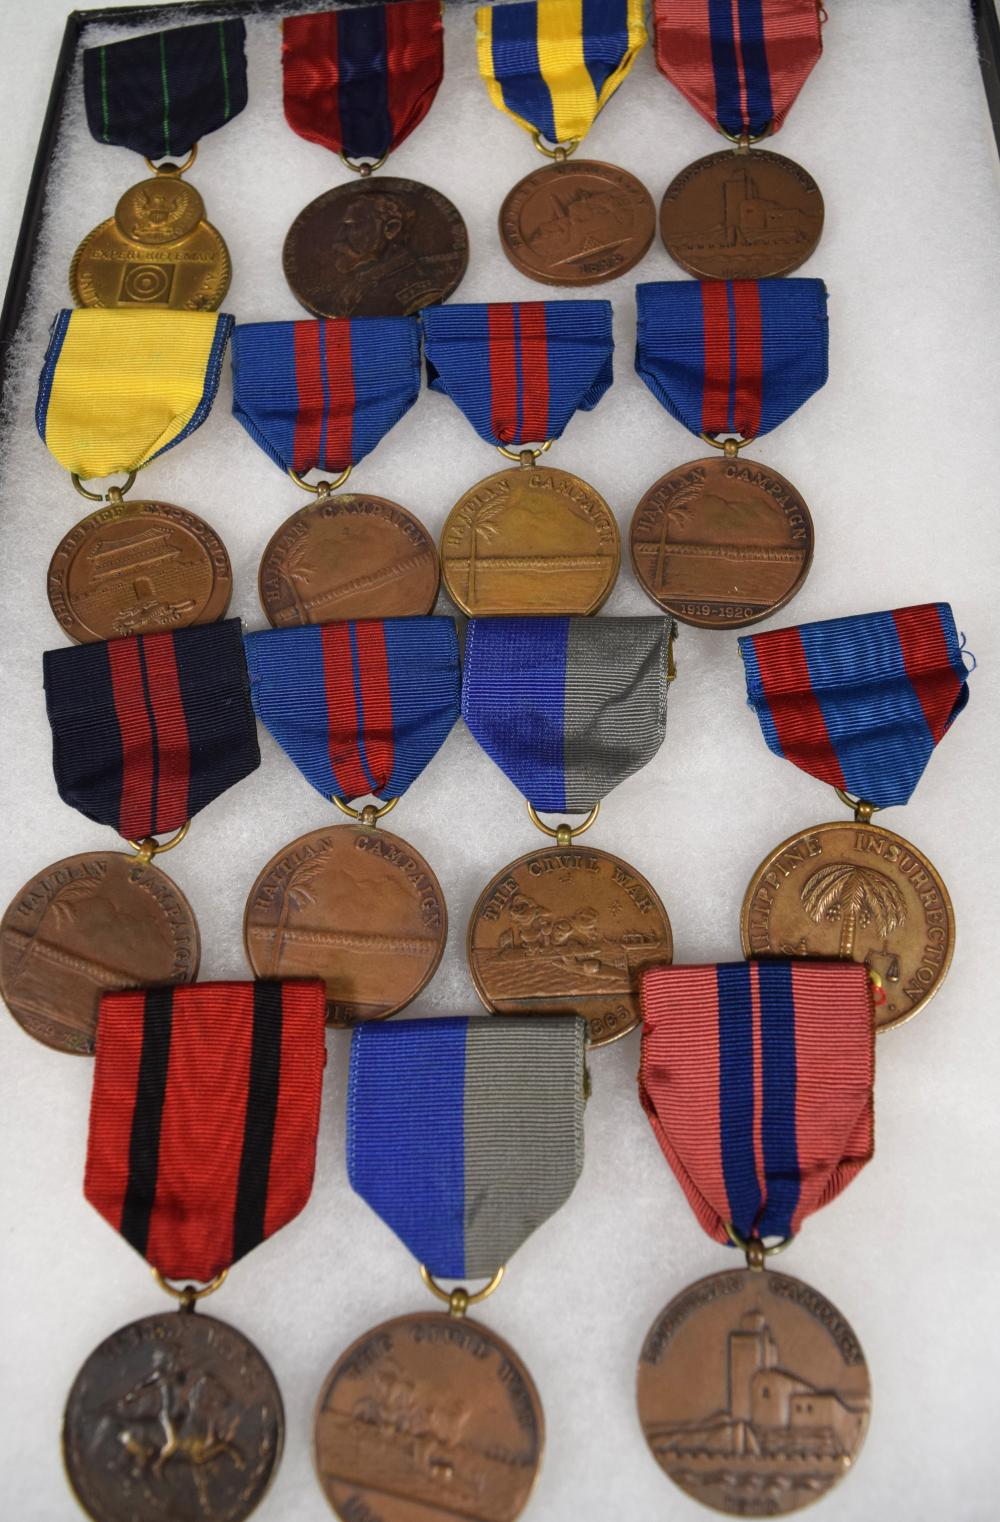 SPANISH AMERICAN WAR & OTHER CAMPAIGNS MILITARY MEDALS: